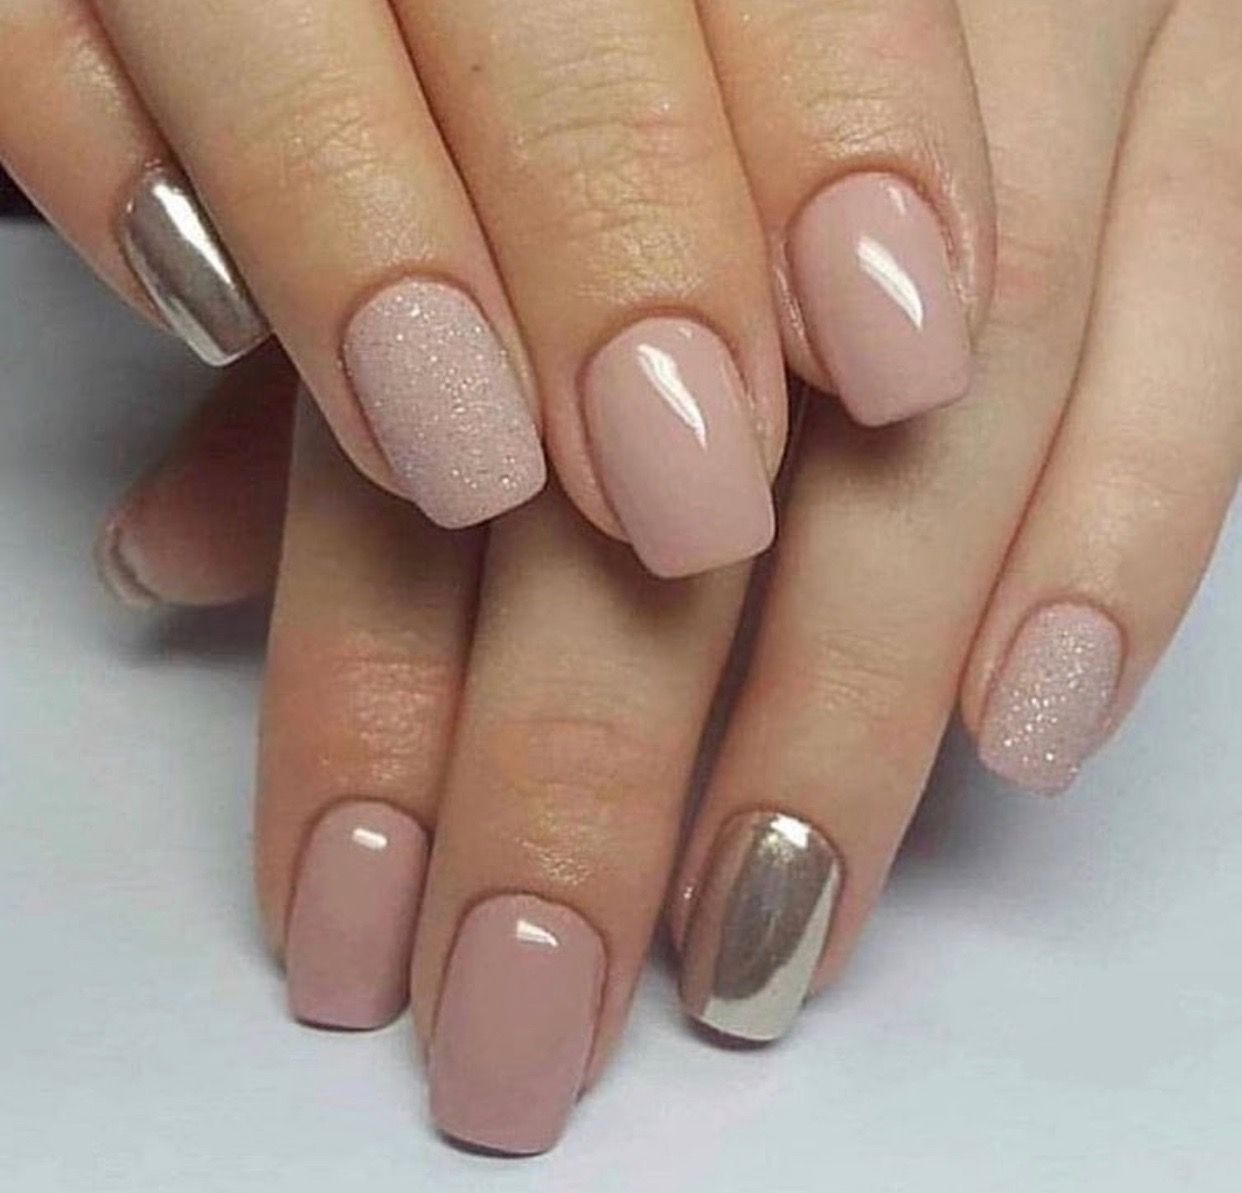 Nail Ideas And Inspiration Nails Looks Including Acrylic Gel Matte Glitter And Natural Gold Nails Nail Design A Zlate Nehty Nehet Vzory Na Akrylove Nehty